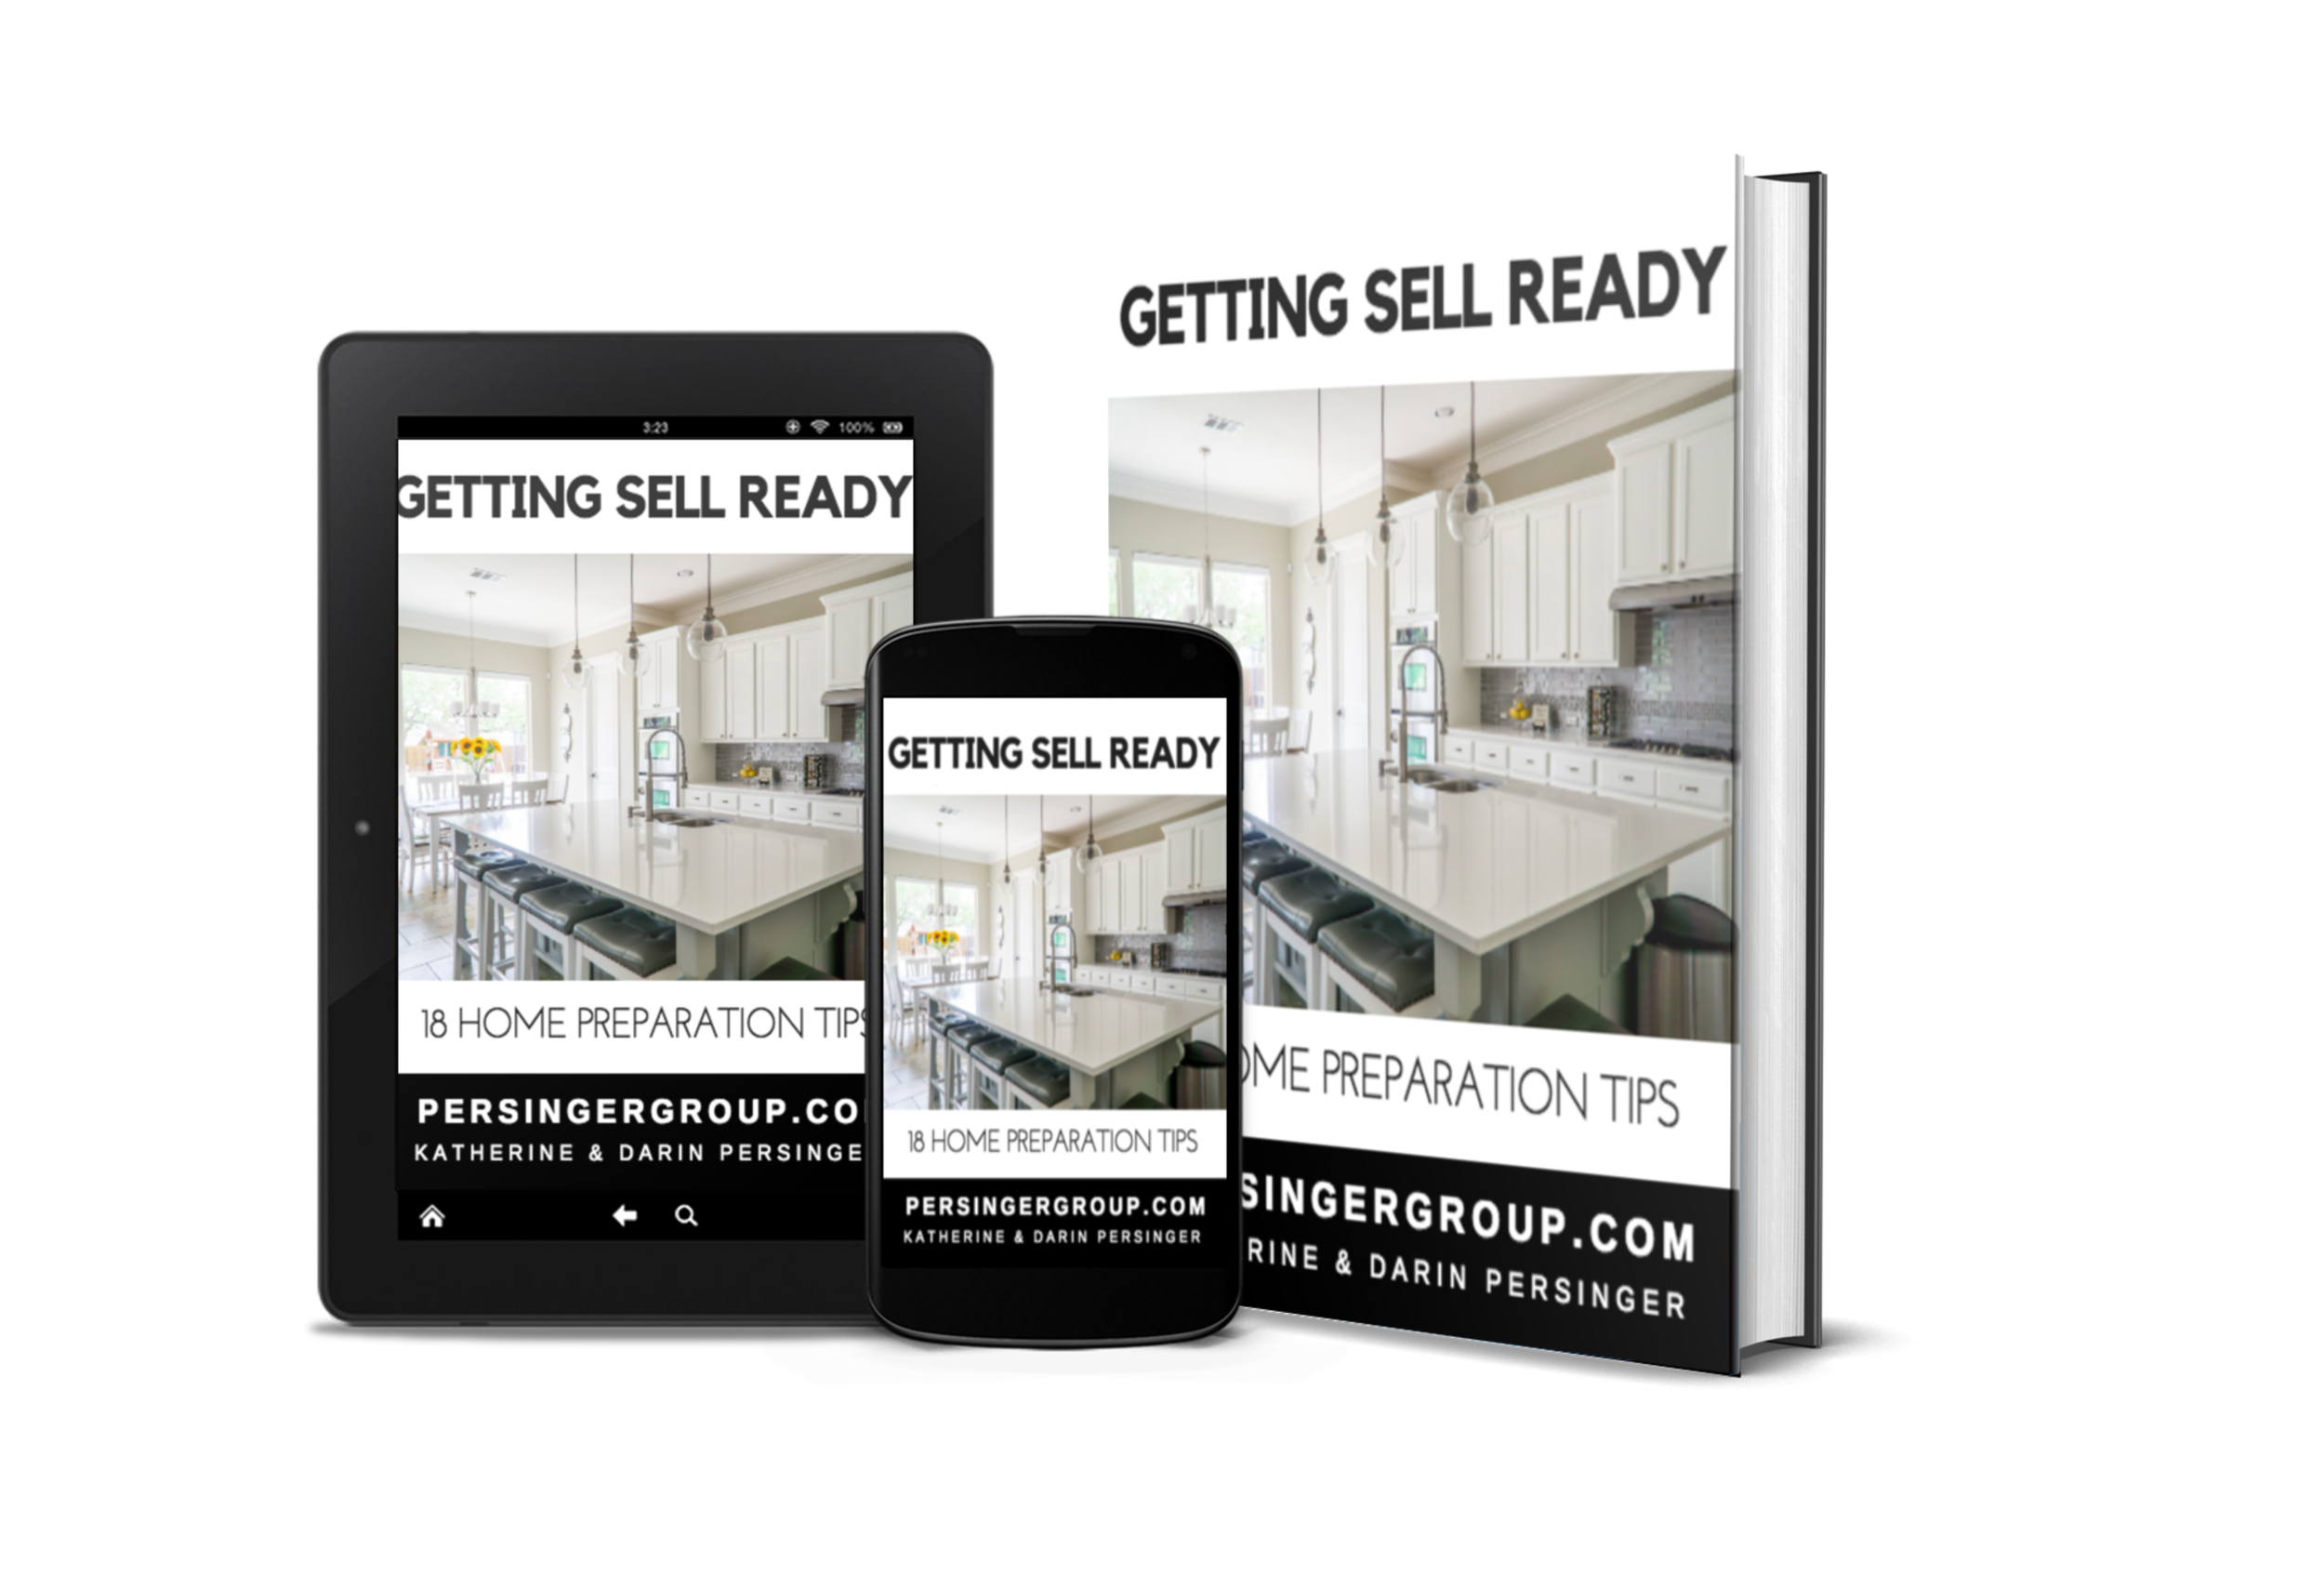 Free Guide For Home Sellers Looking To Get Their Home Ready To Sell